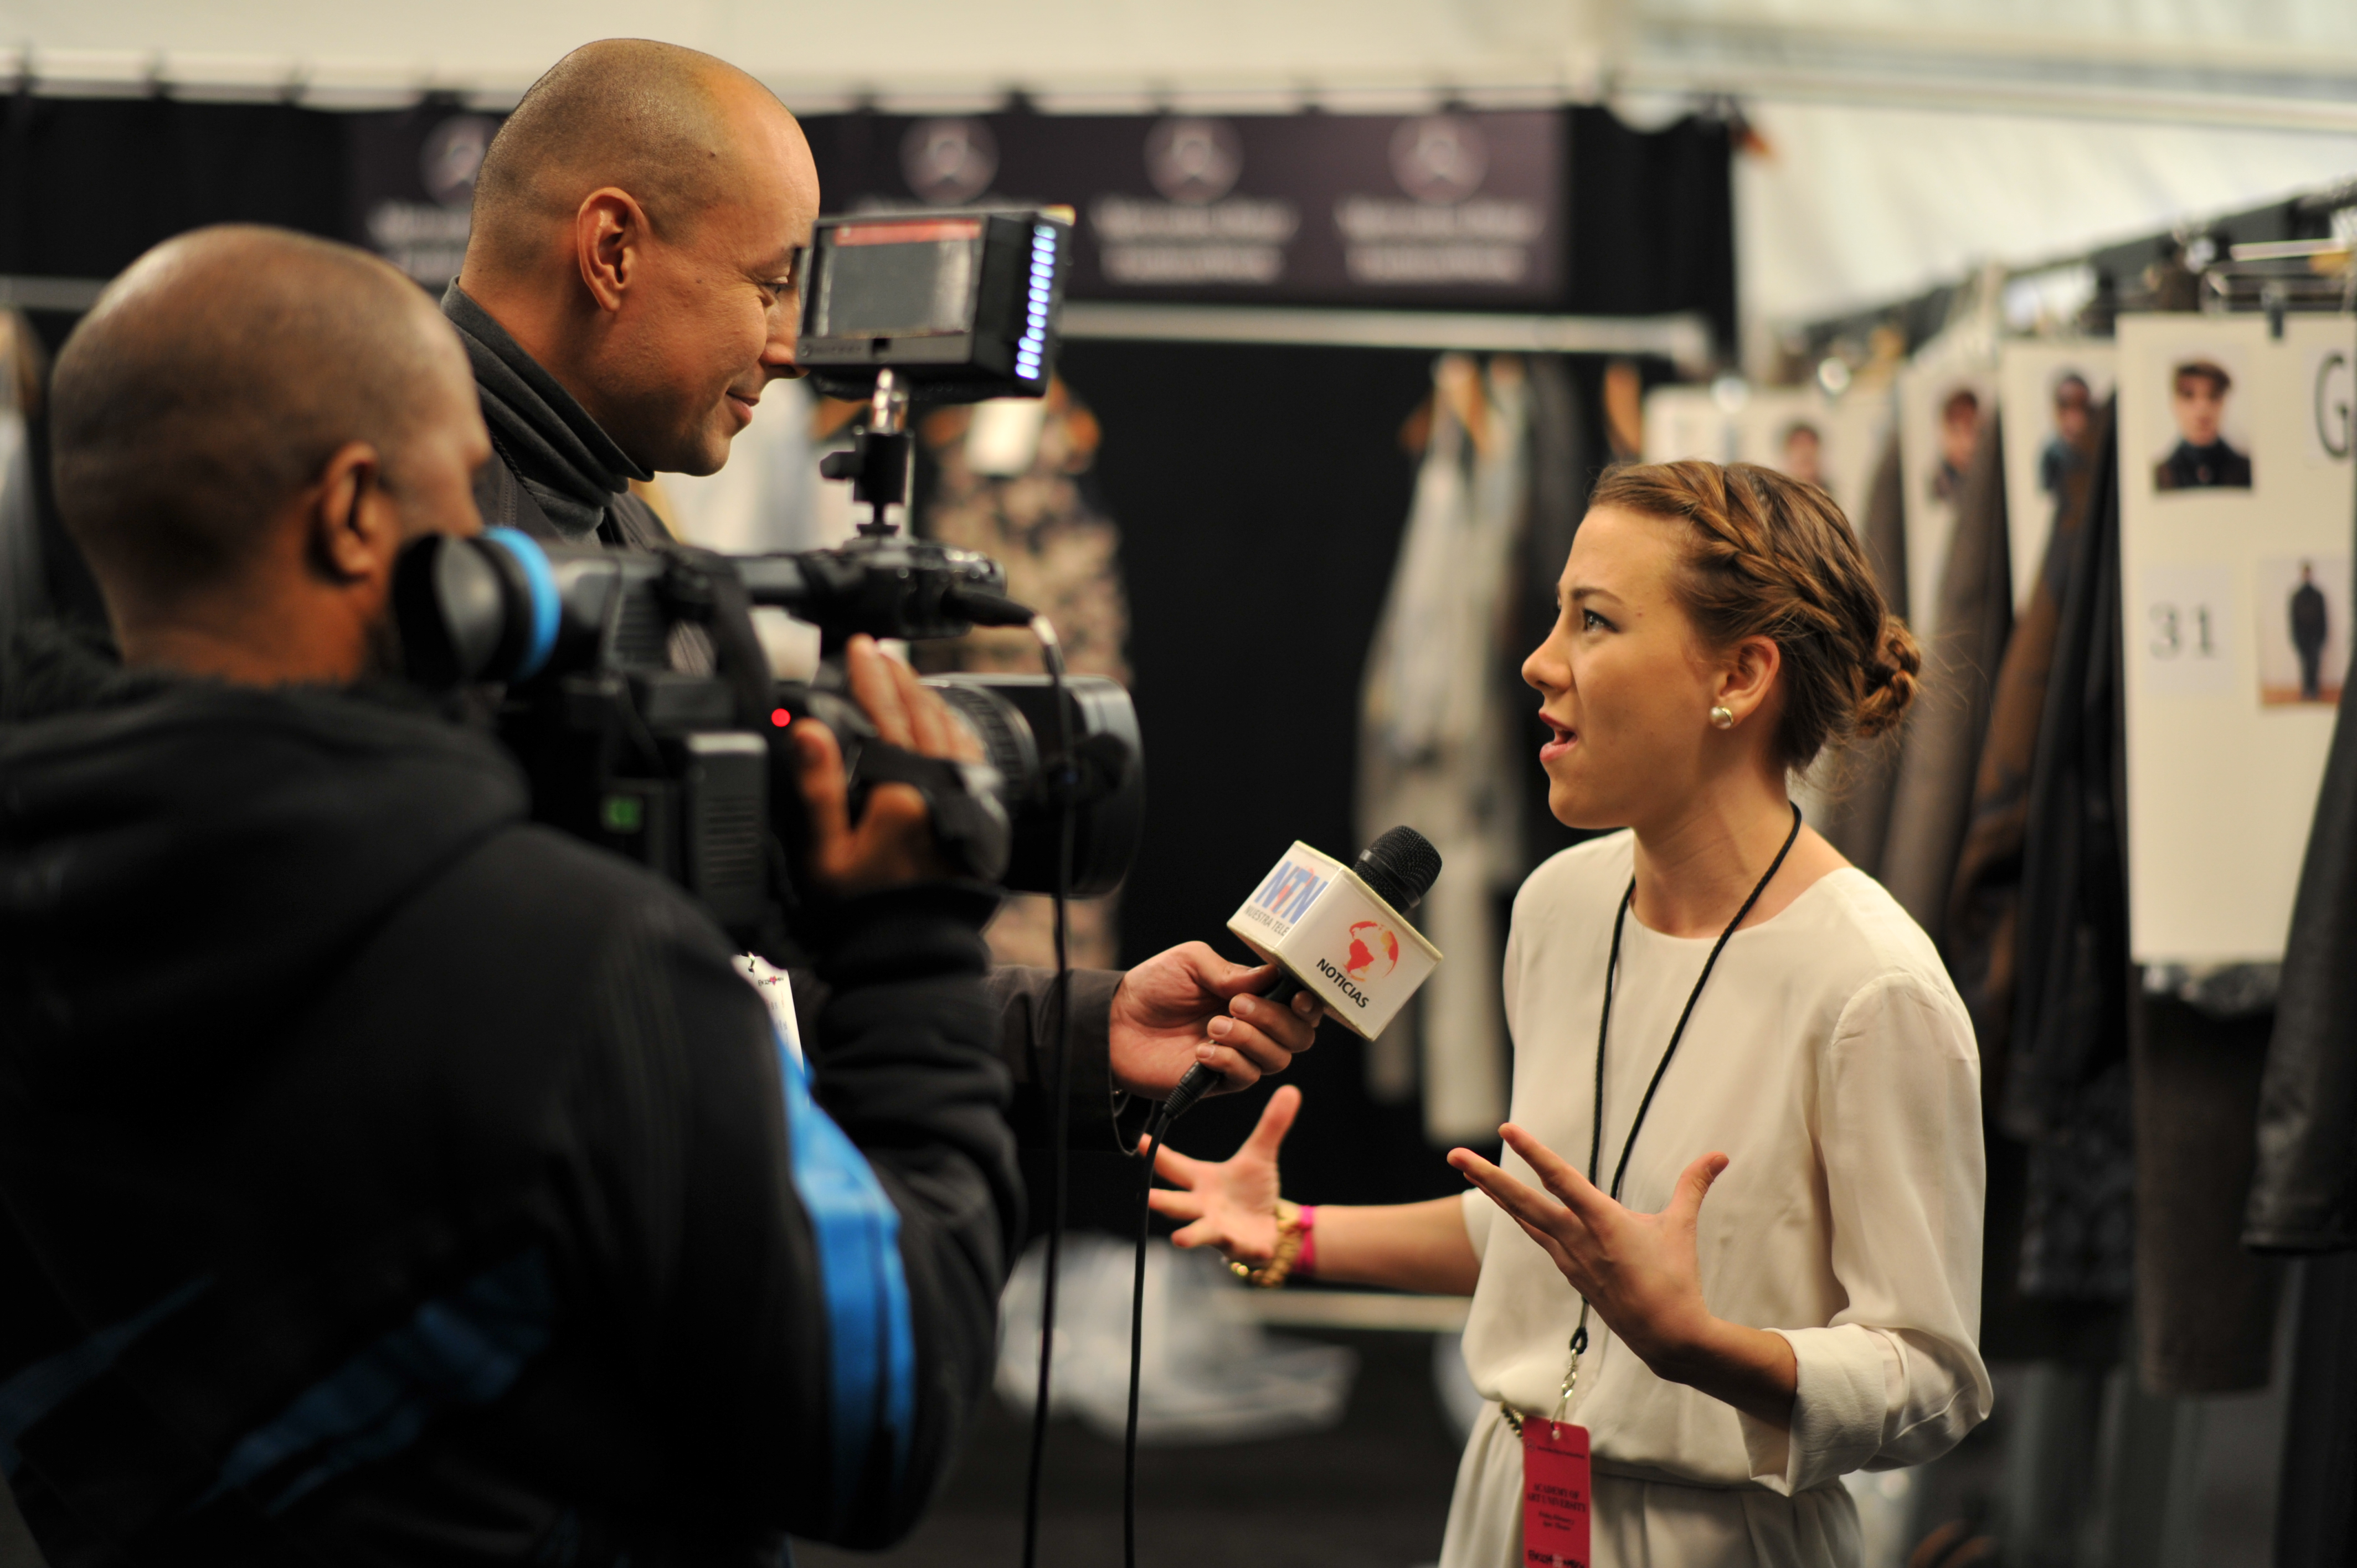 Andrea Nieto during an interview with press at New York Fashion Week in February 2014.